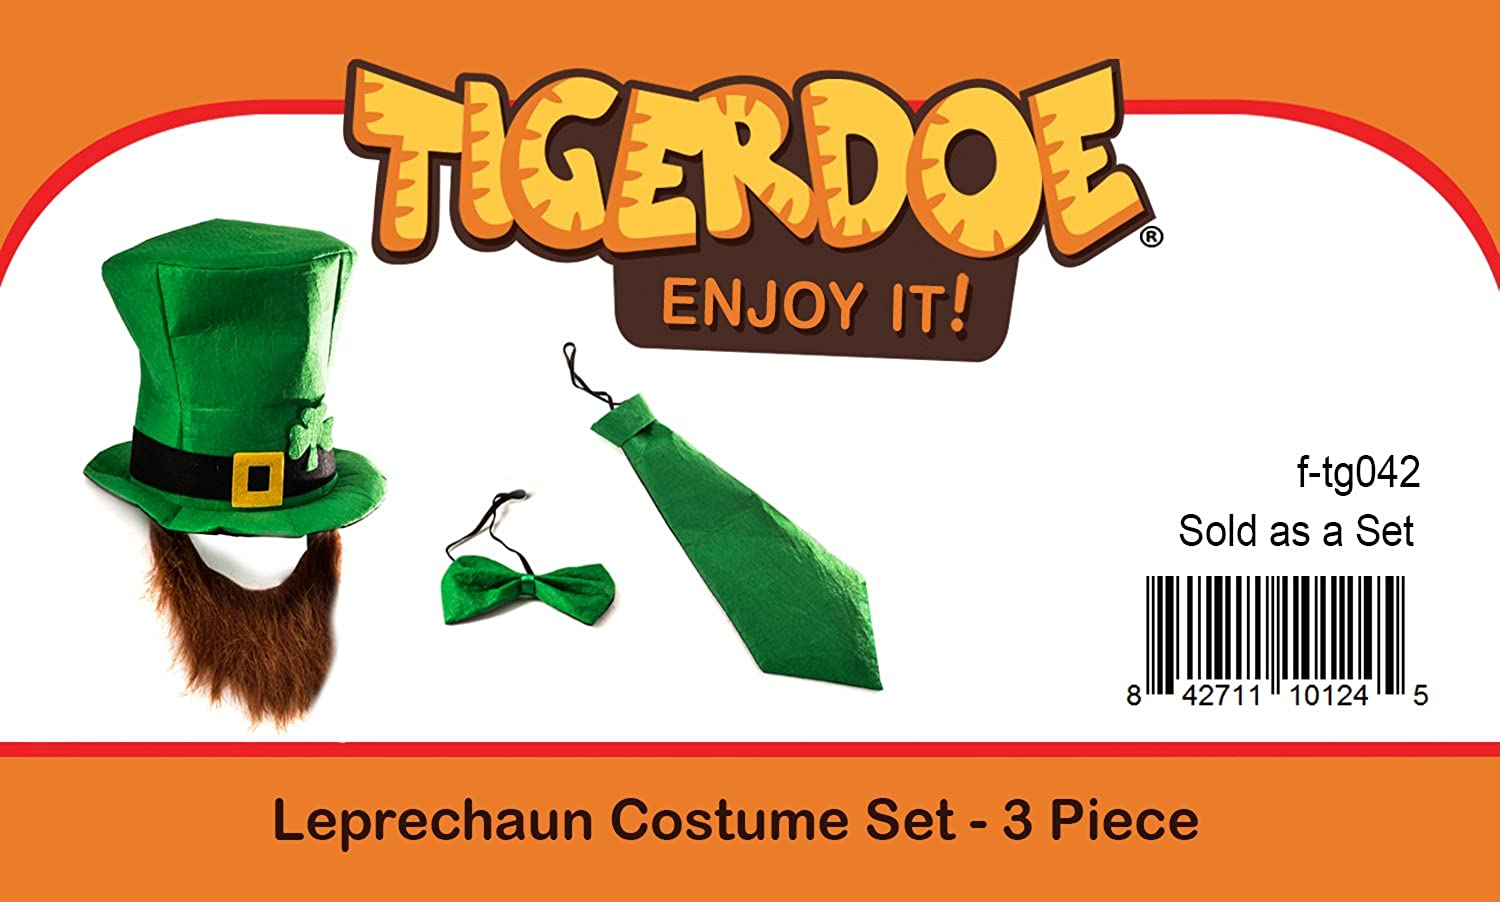 b597ed7d9 Tigerdoe Leprechaun Costume - Leprechaun Hat - St. Patricks Day Accessories  - Lucky Charm Costume (3 Pc Set) Green